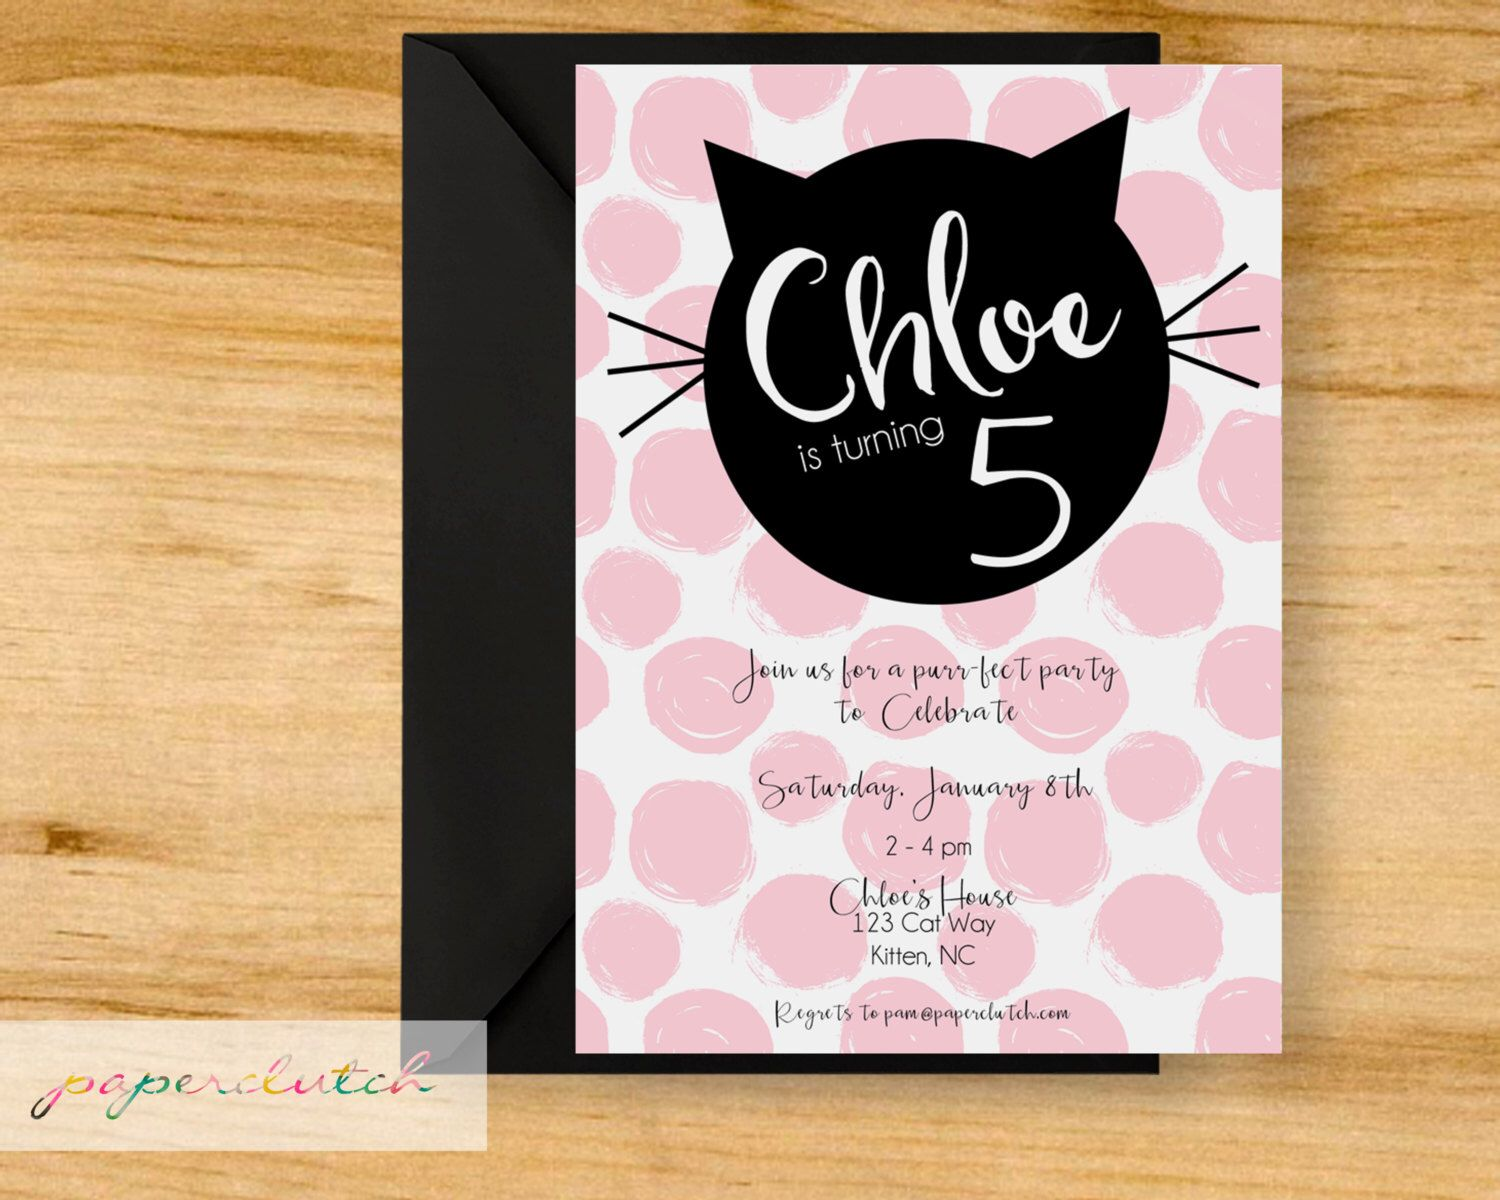 Cat birthday party invitation pink poka dot kitten darling kitty cat kitten birthday party invitation pink and black digital file or printed by paperclutchshop on etsy filmwisefo